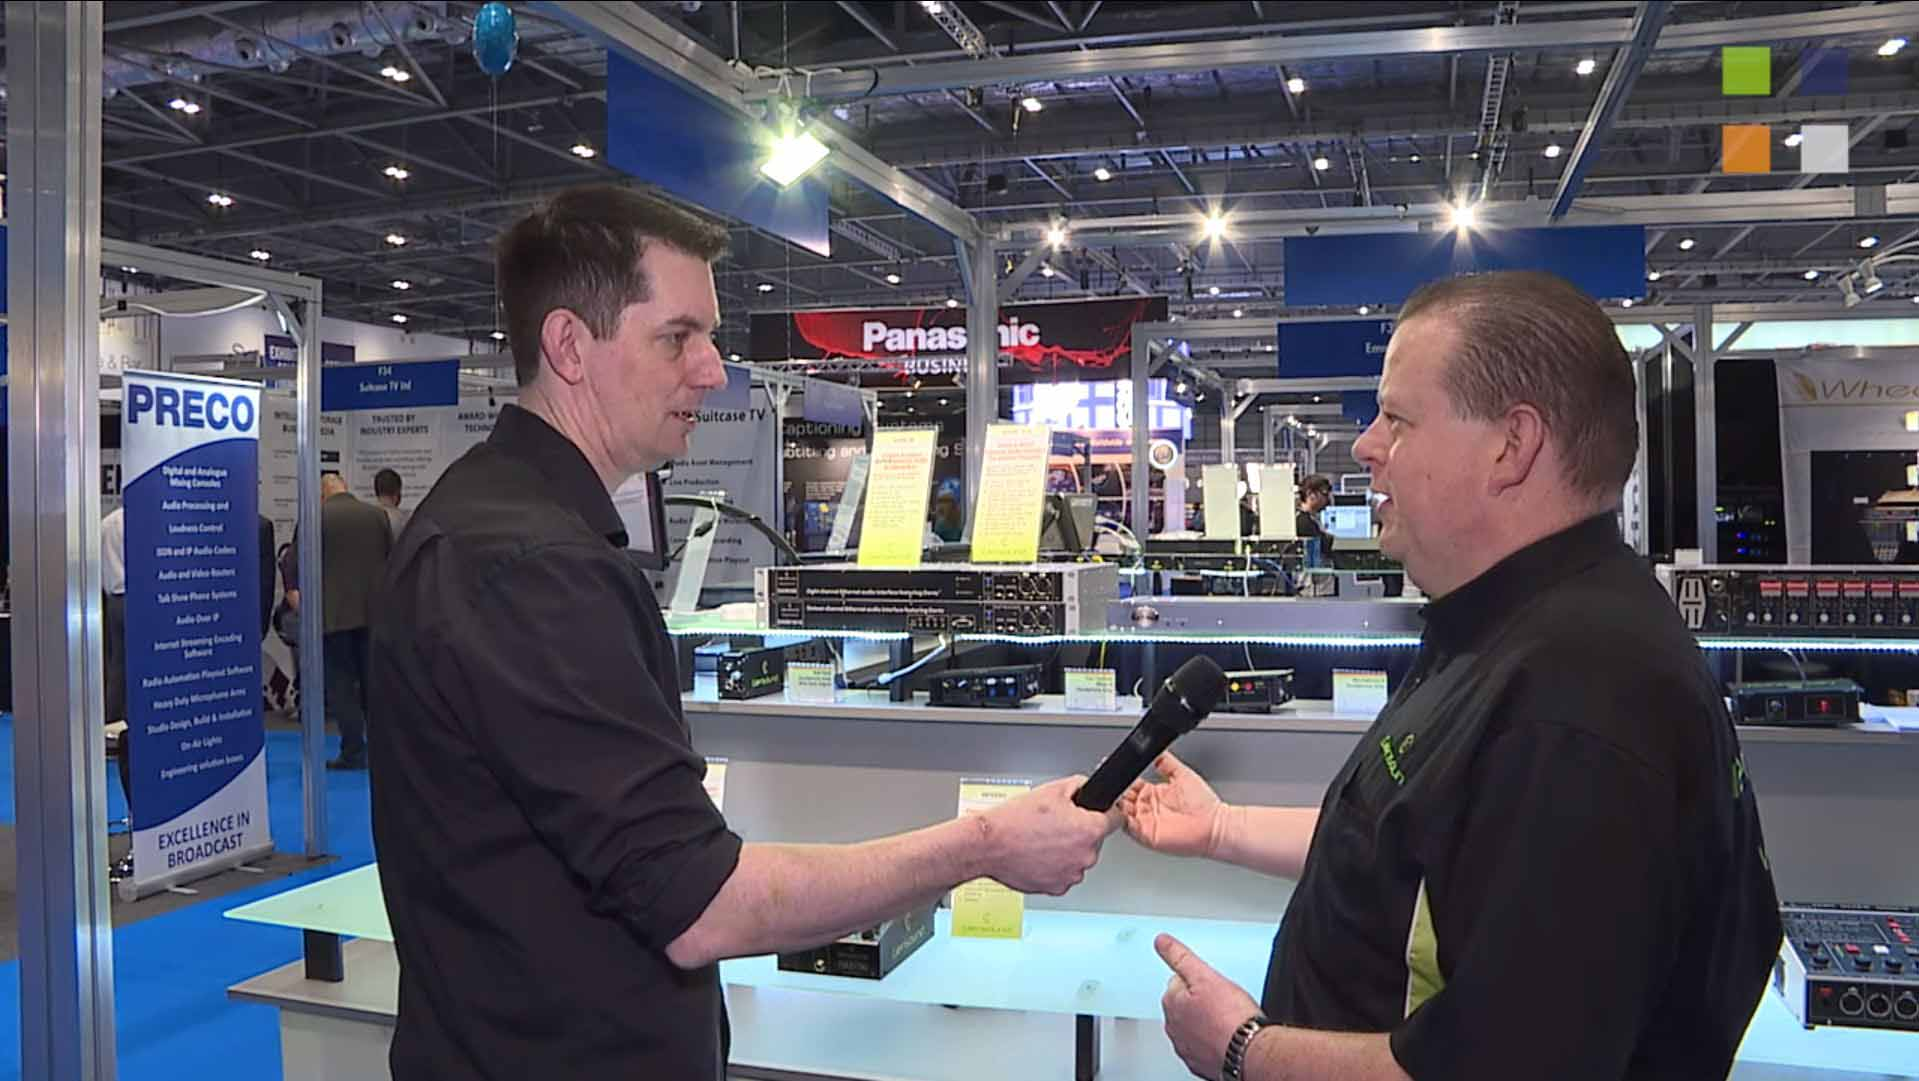 Glensound at BVE 2016